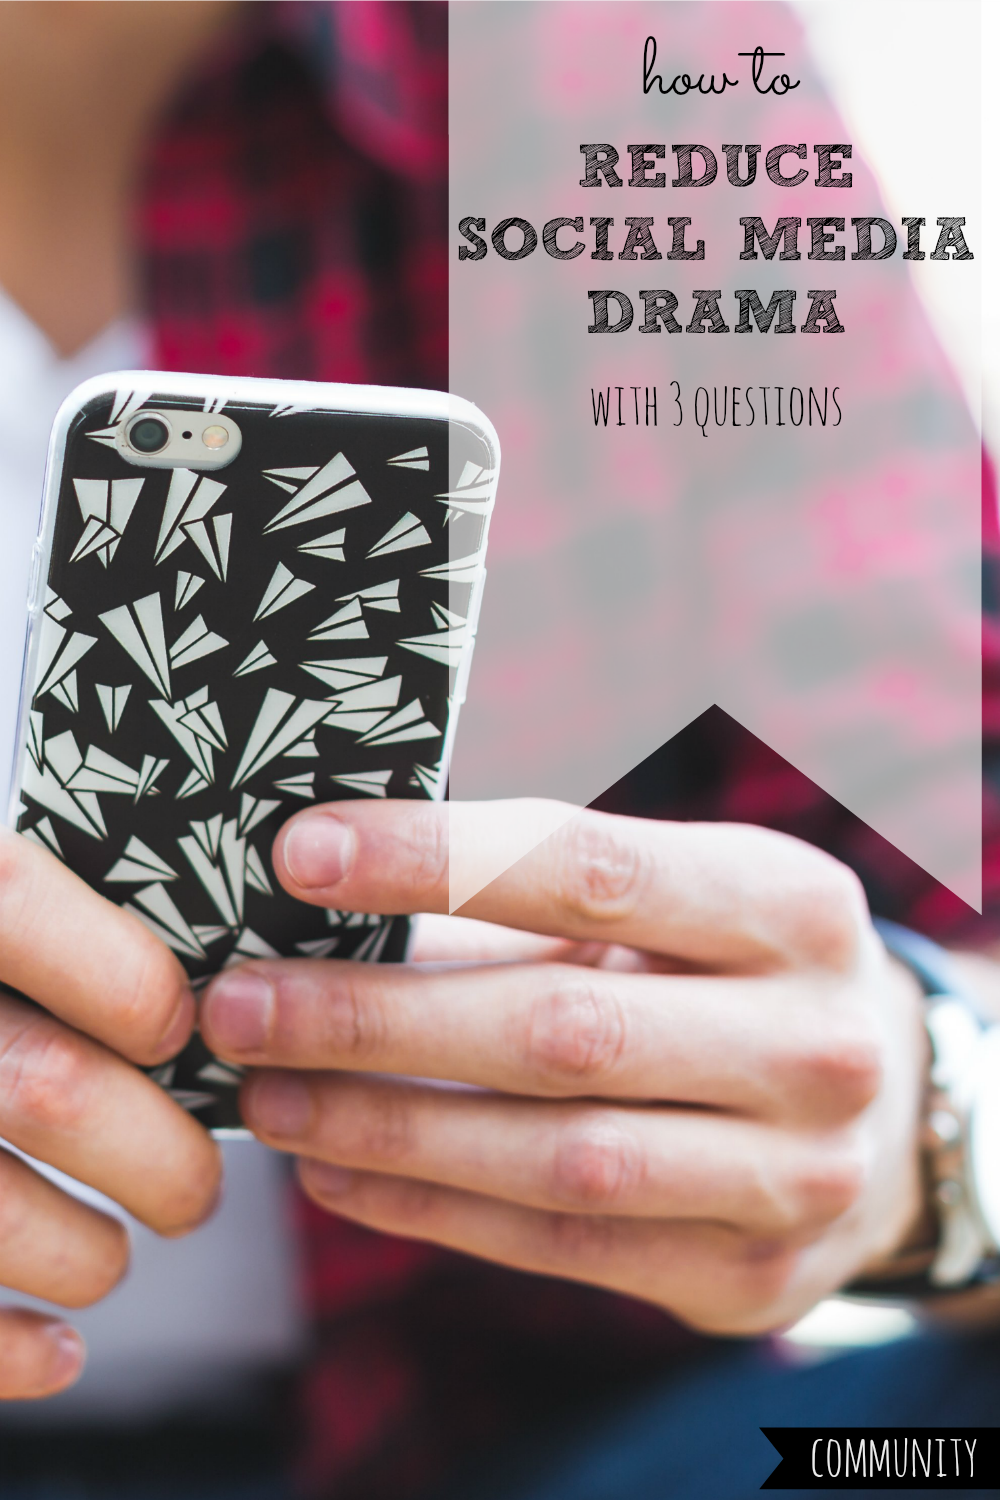 Ever feel like browsing social media is more stressful than fun? Here's how to reduce social media drama TODAY with 3 simple questions! #reduce #social #media #drama #tip #tips #break #unfollow #unfollowing #unfriend #unfriended #block #blocked #facebook #instagram #twitter